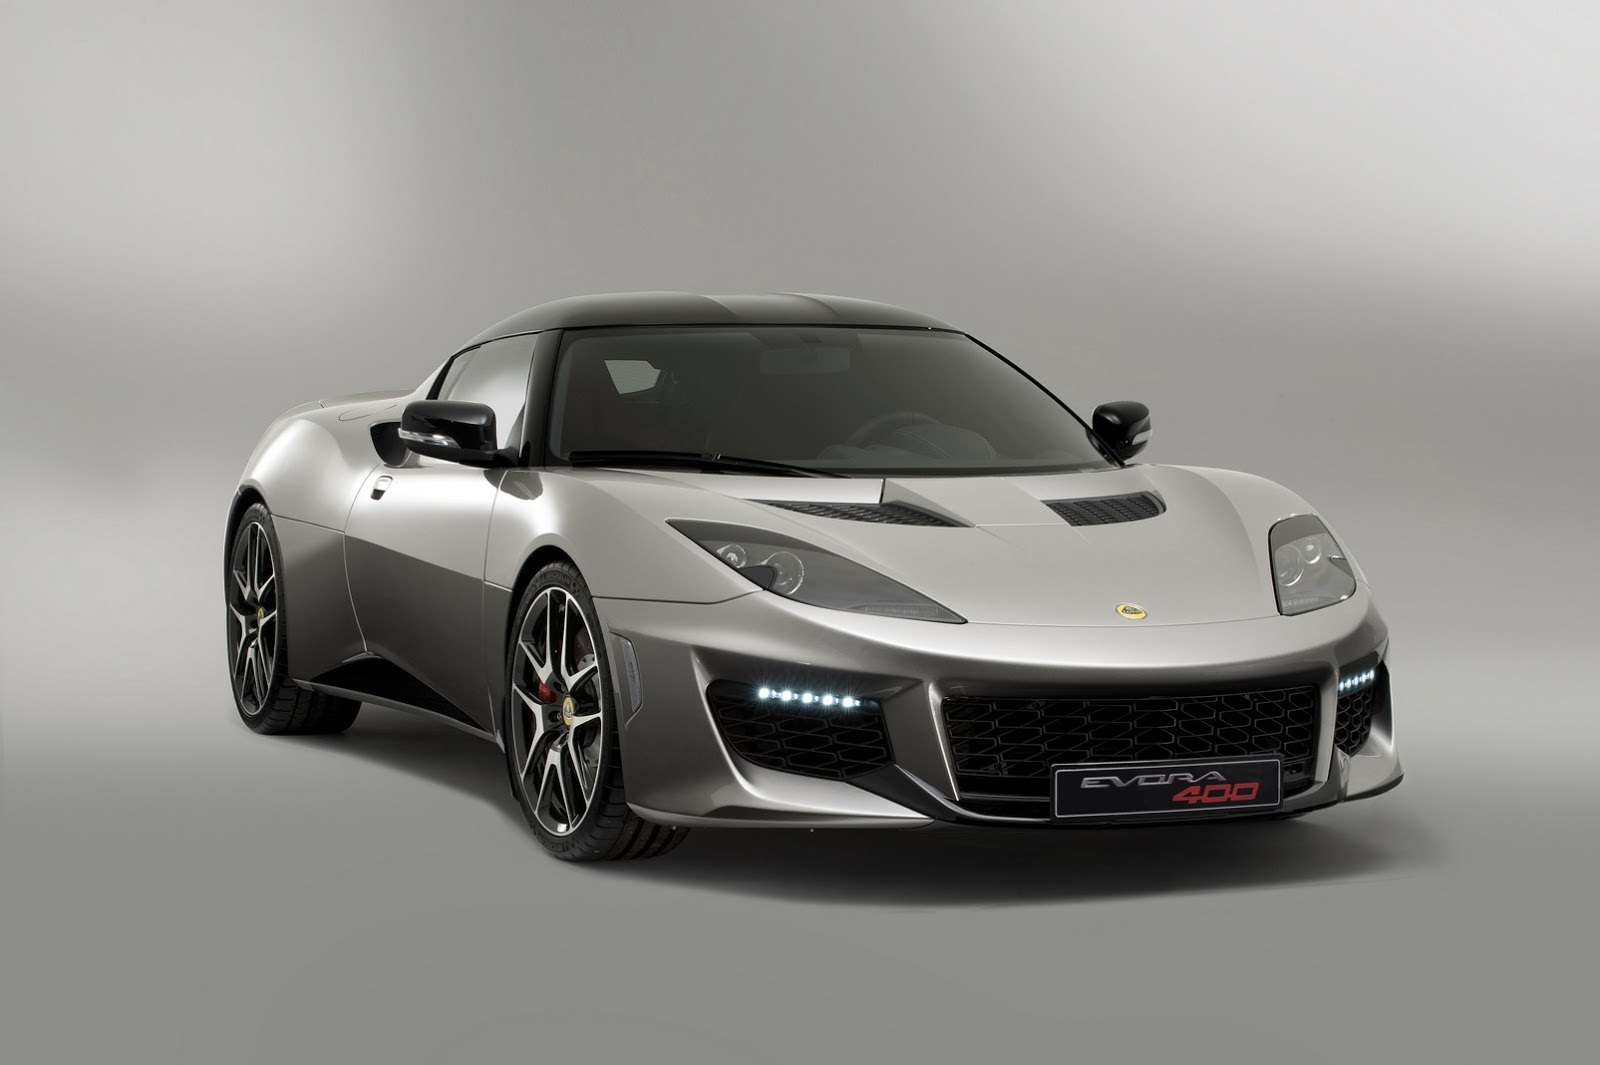 Lotus Evora Facelift (2015) 8